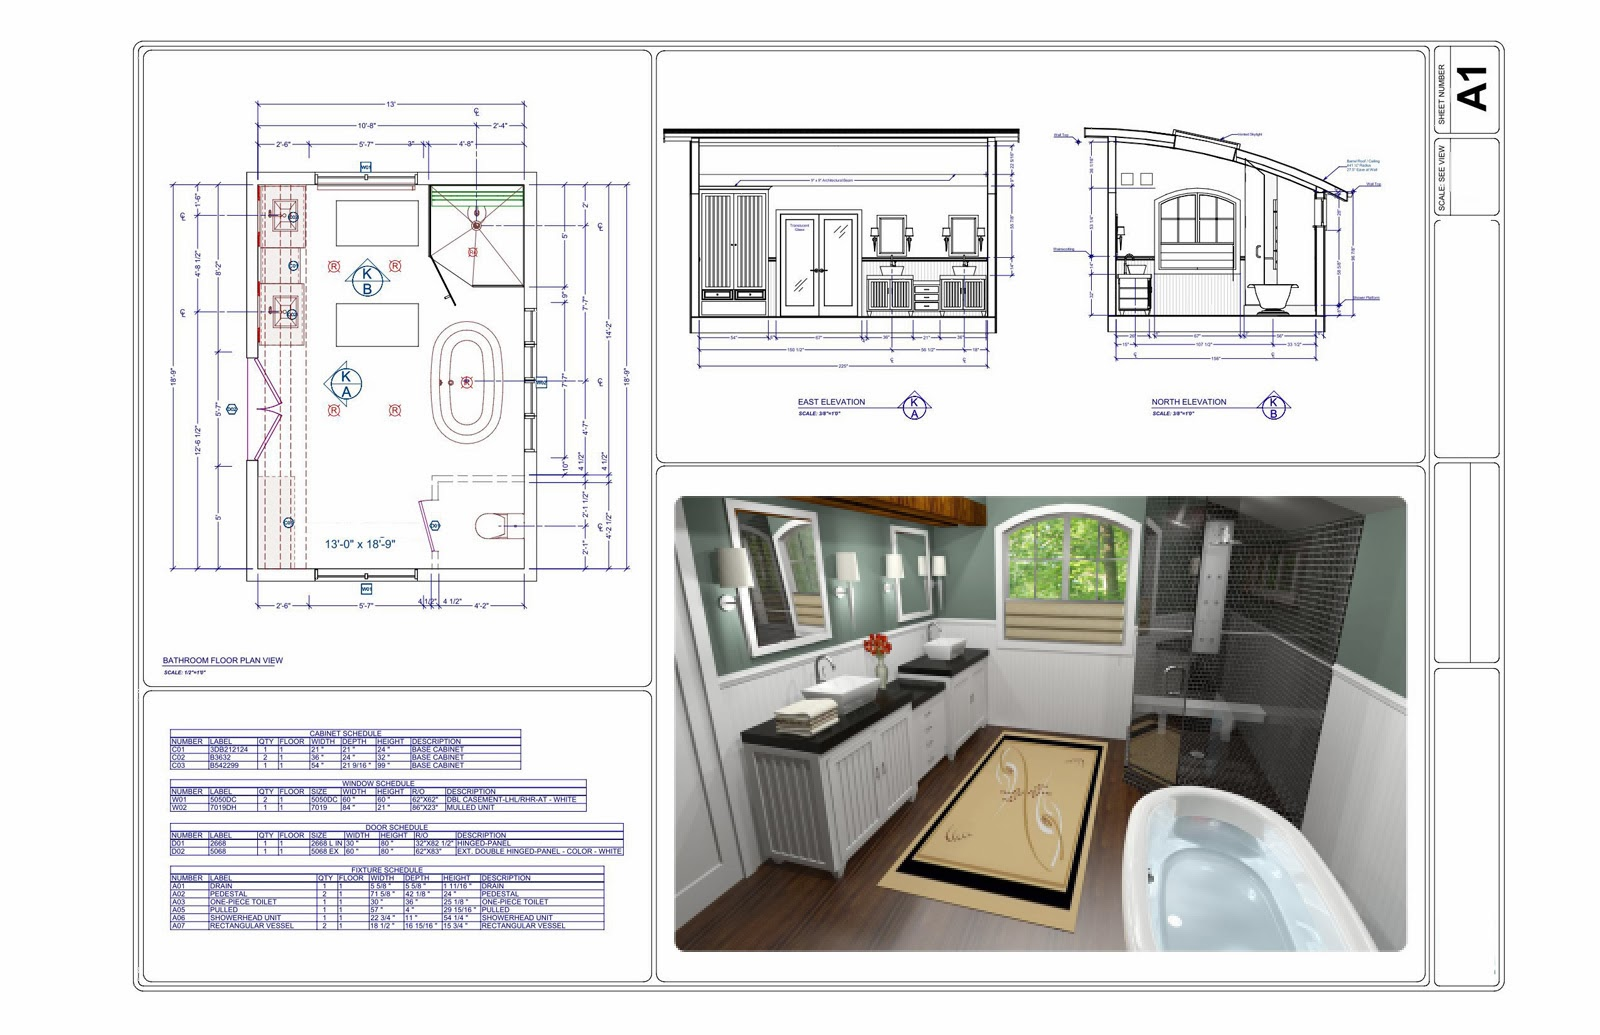 Cad kitchen design software Kitchen design software for beginners